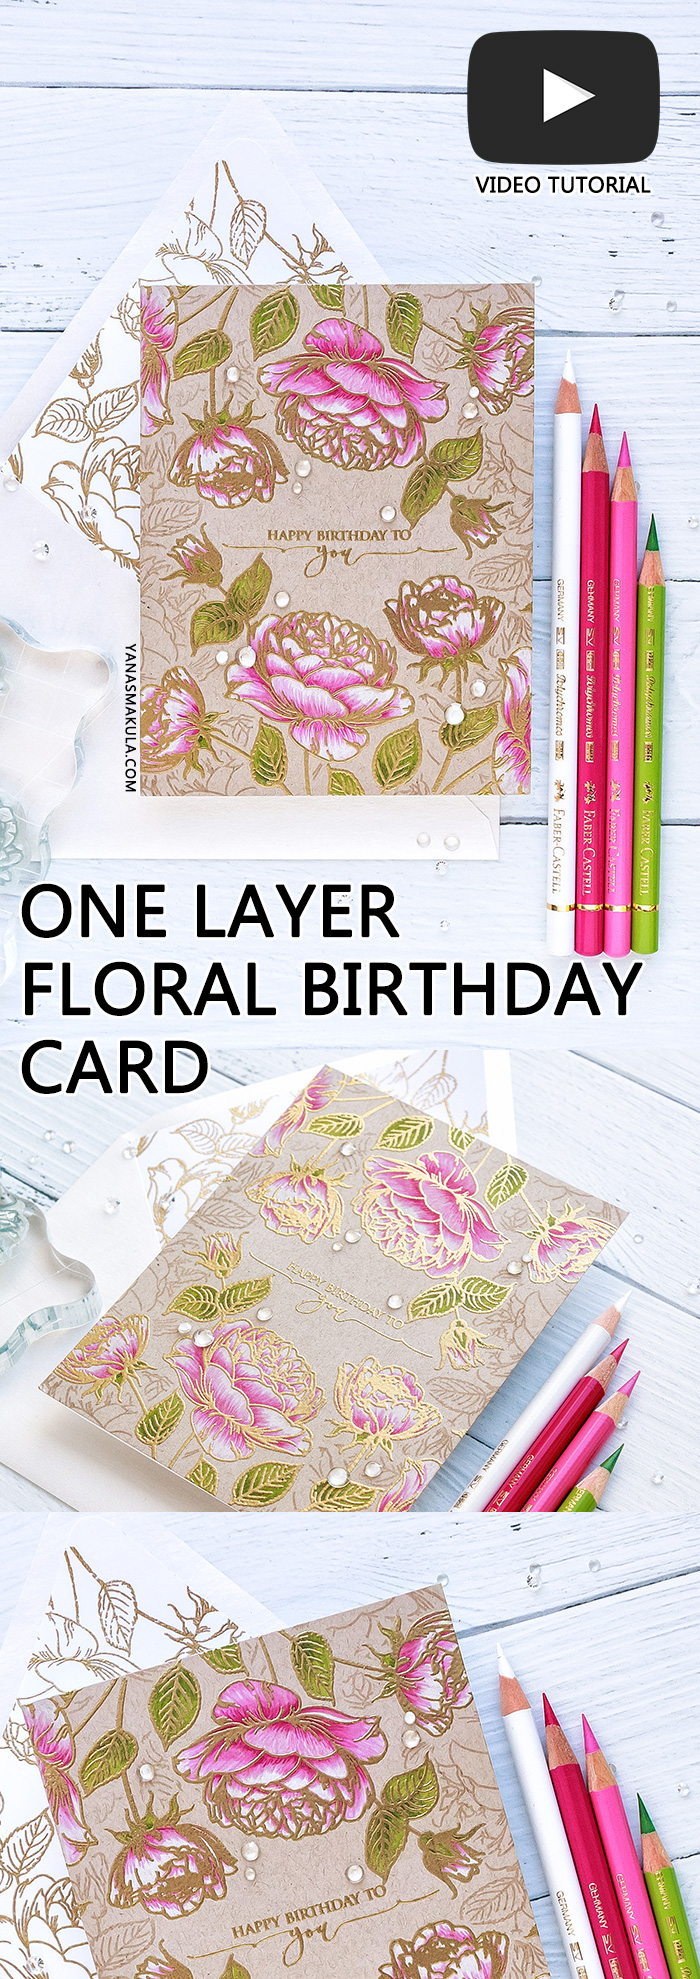 Gina K Designs | One Layer Floral Birthday Card featuring Tropical Blooms and Scripty Sayins One stamps. Video tutorial by Yana Smakula #stamping #cardmaking #ginakdesigns #handmadecard #birthdaycard